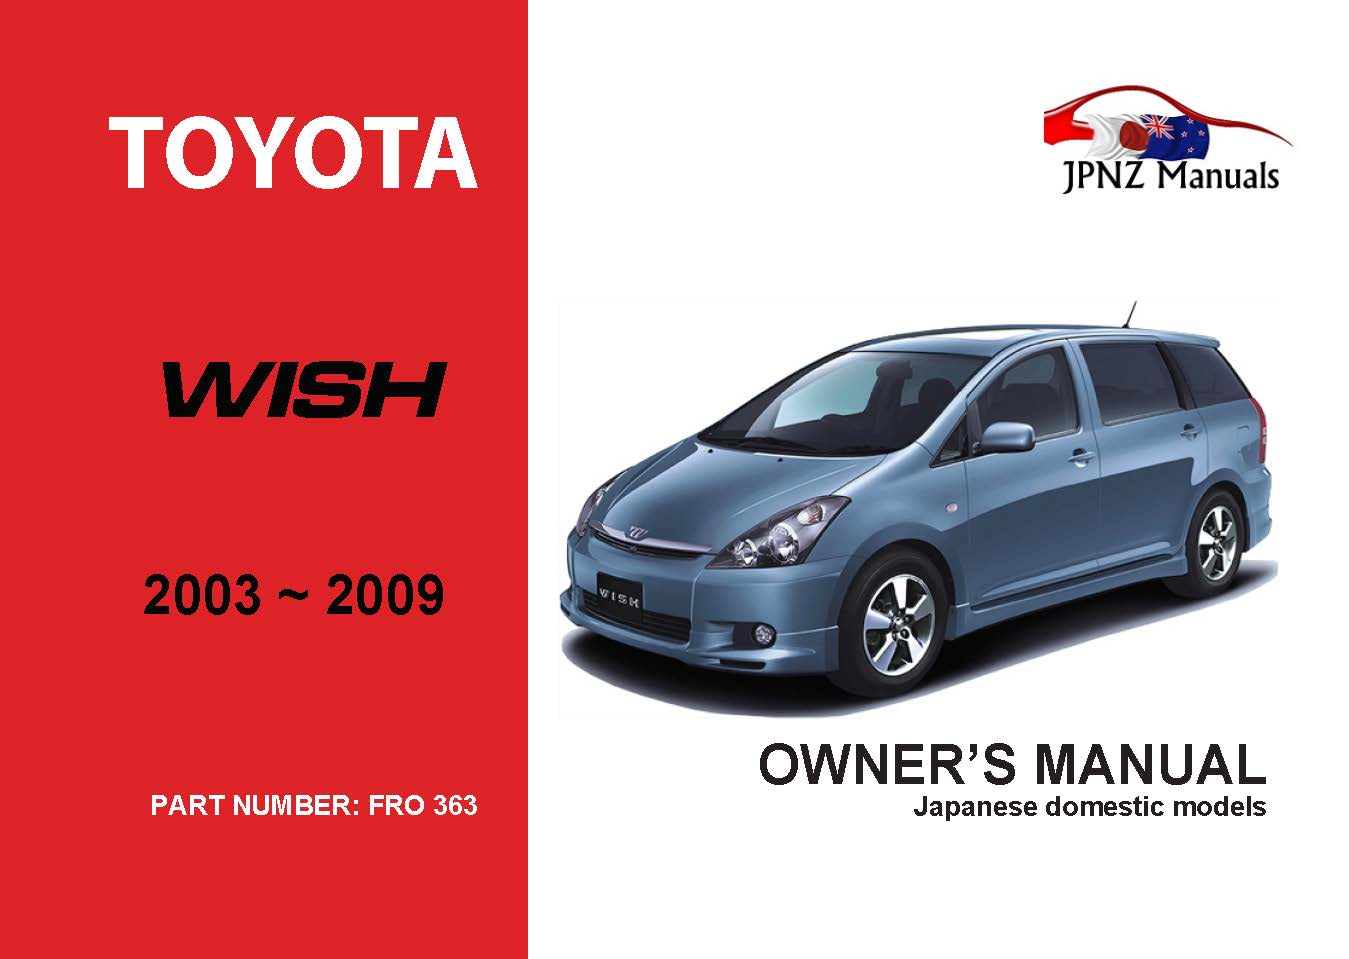 Toyota – Wish car owners manual | 2003 – 2009